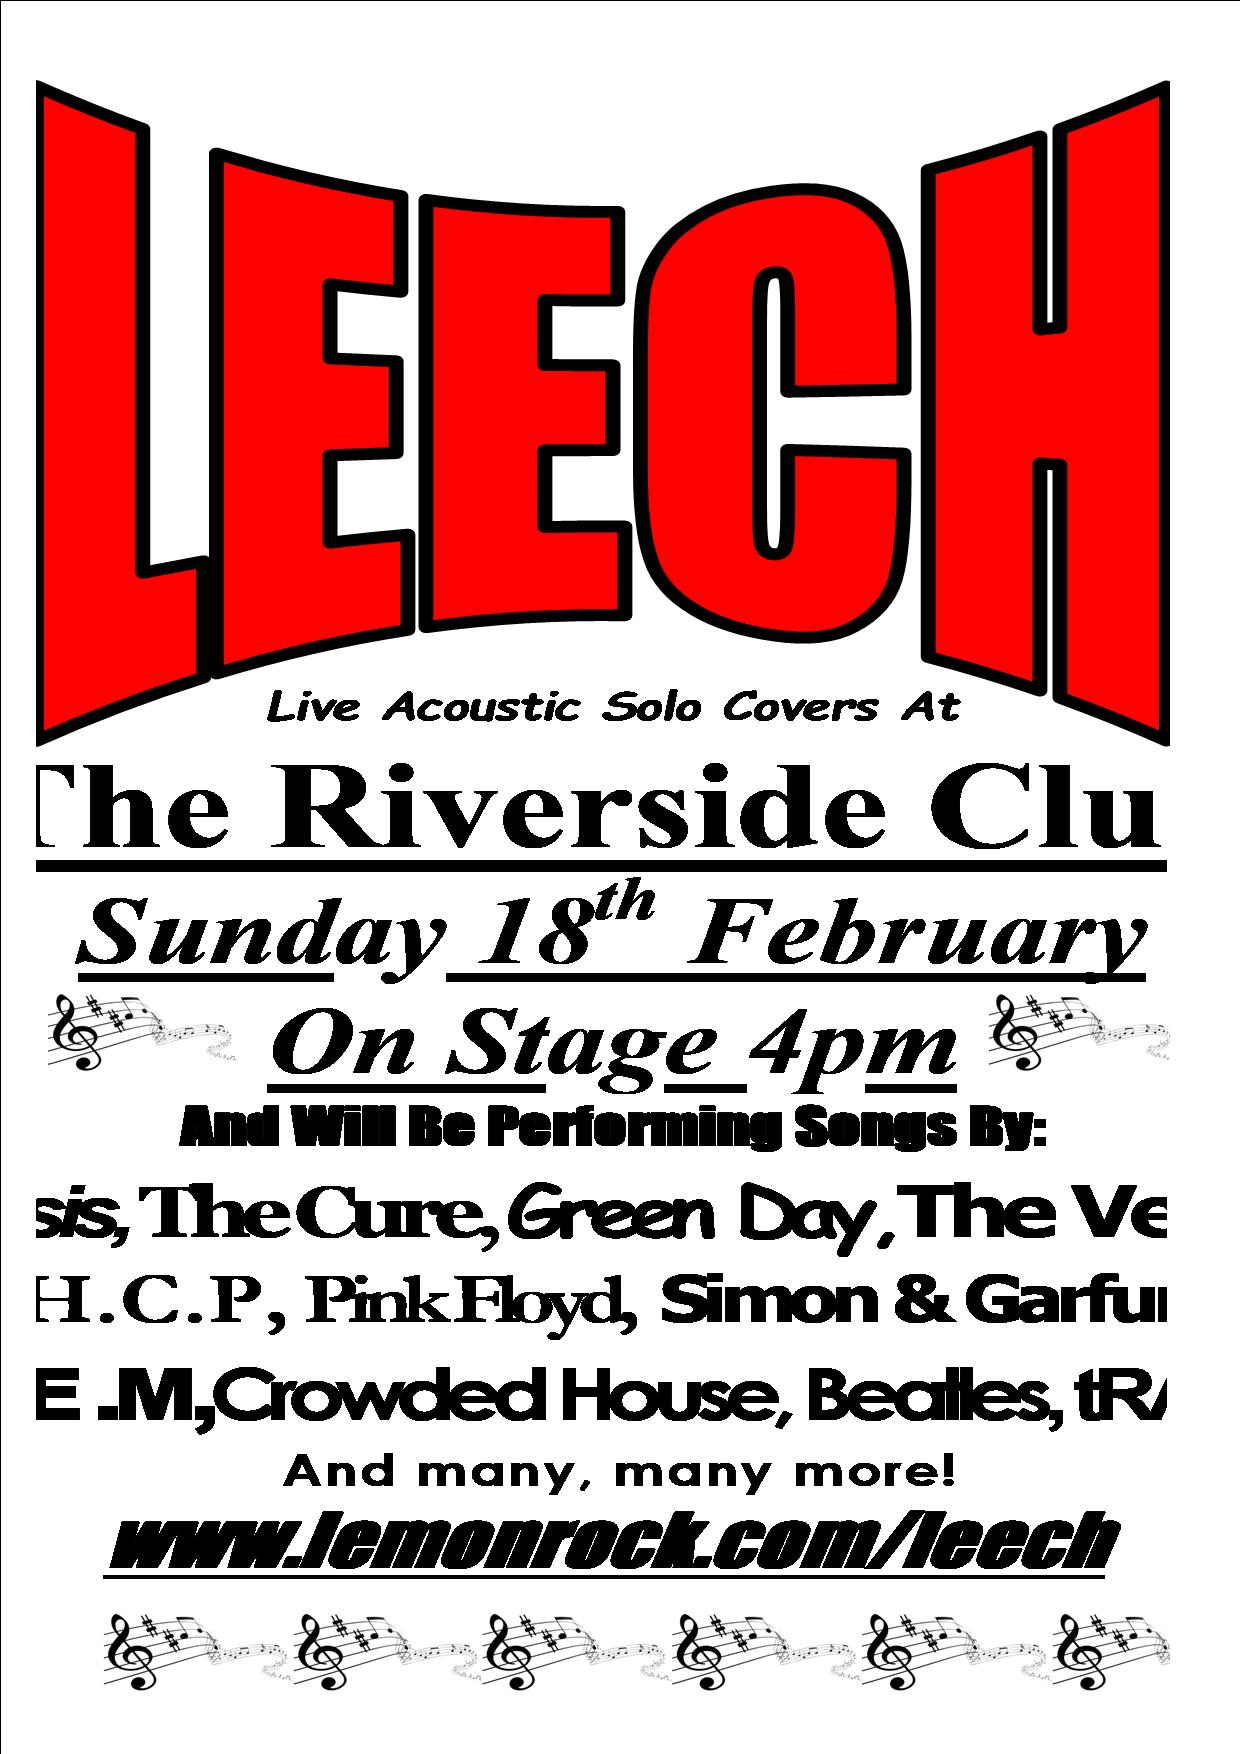 Leech Live Acoustic Solo Covers act